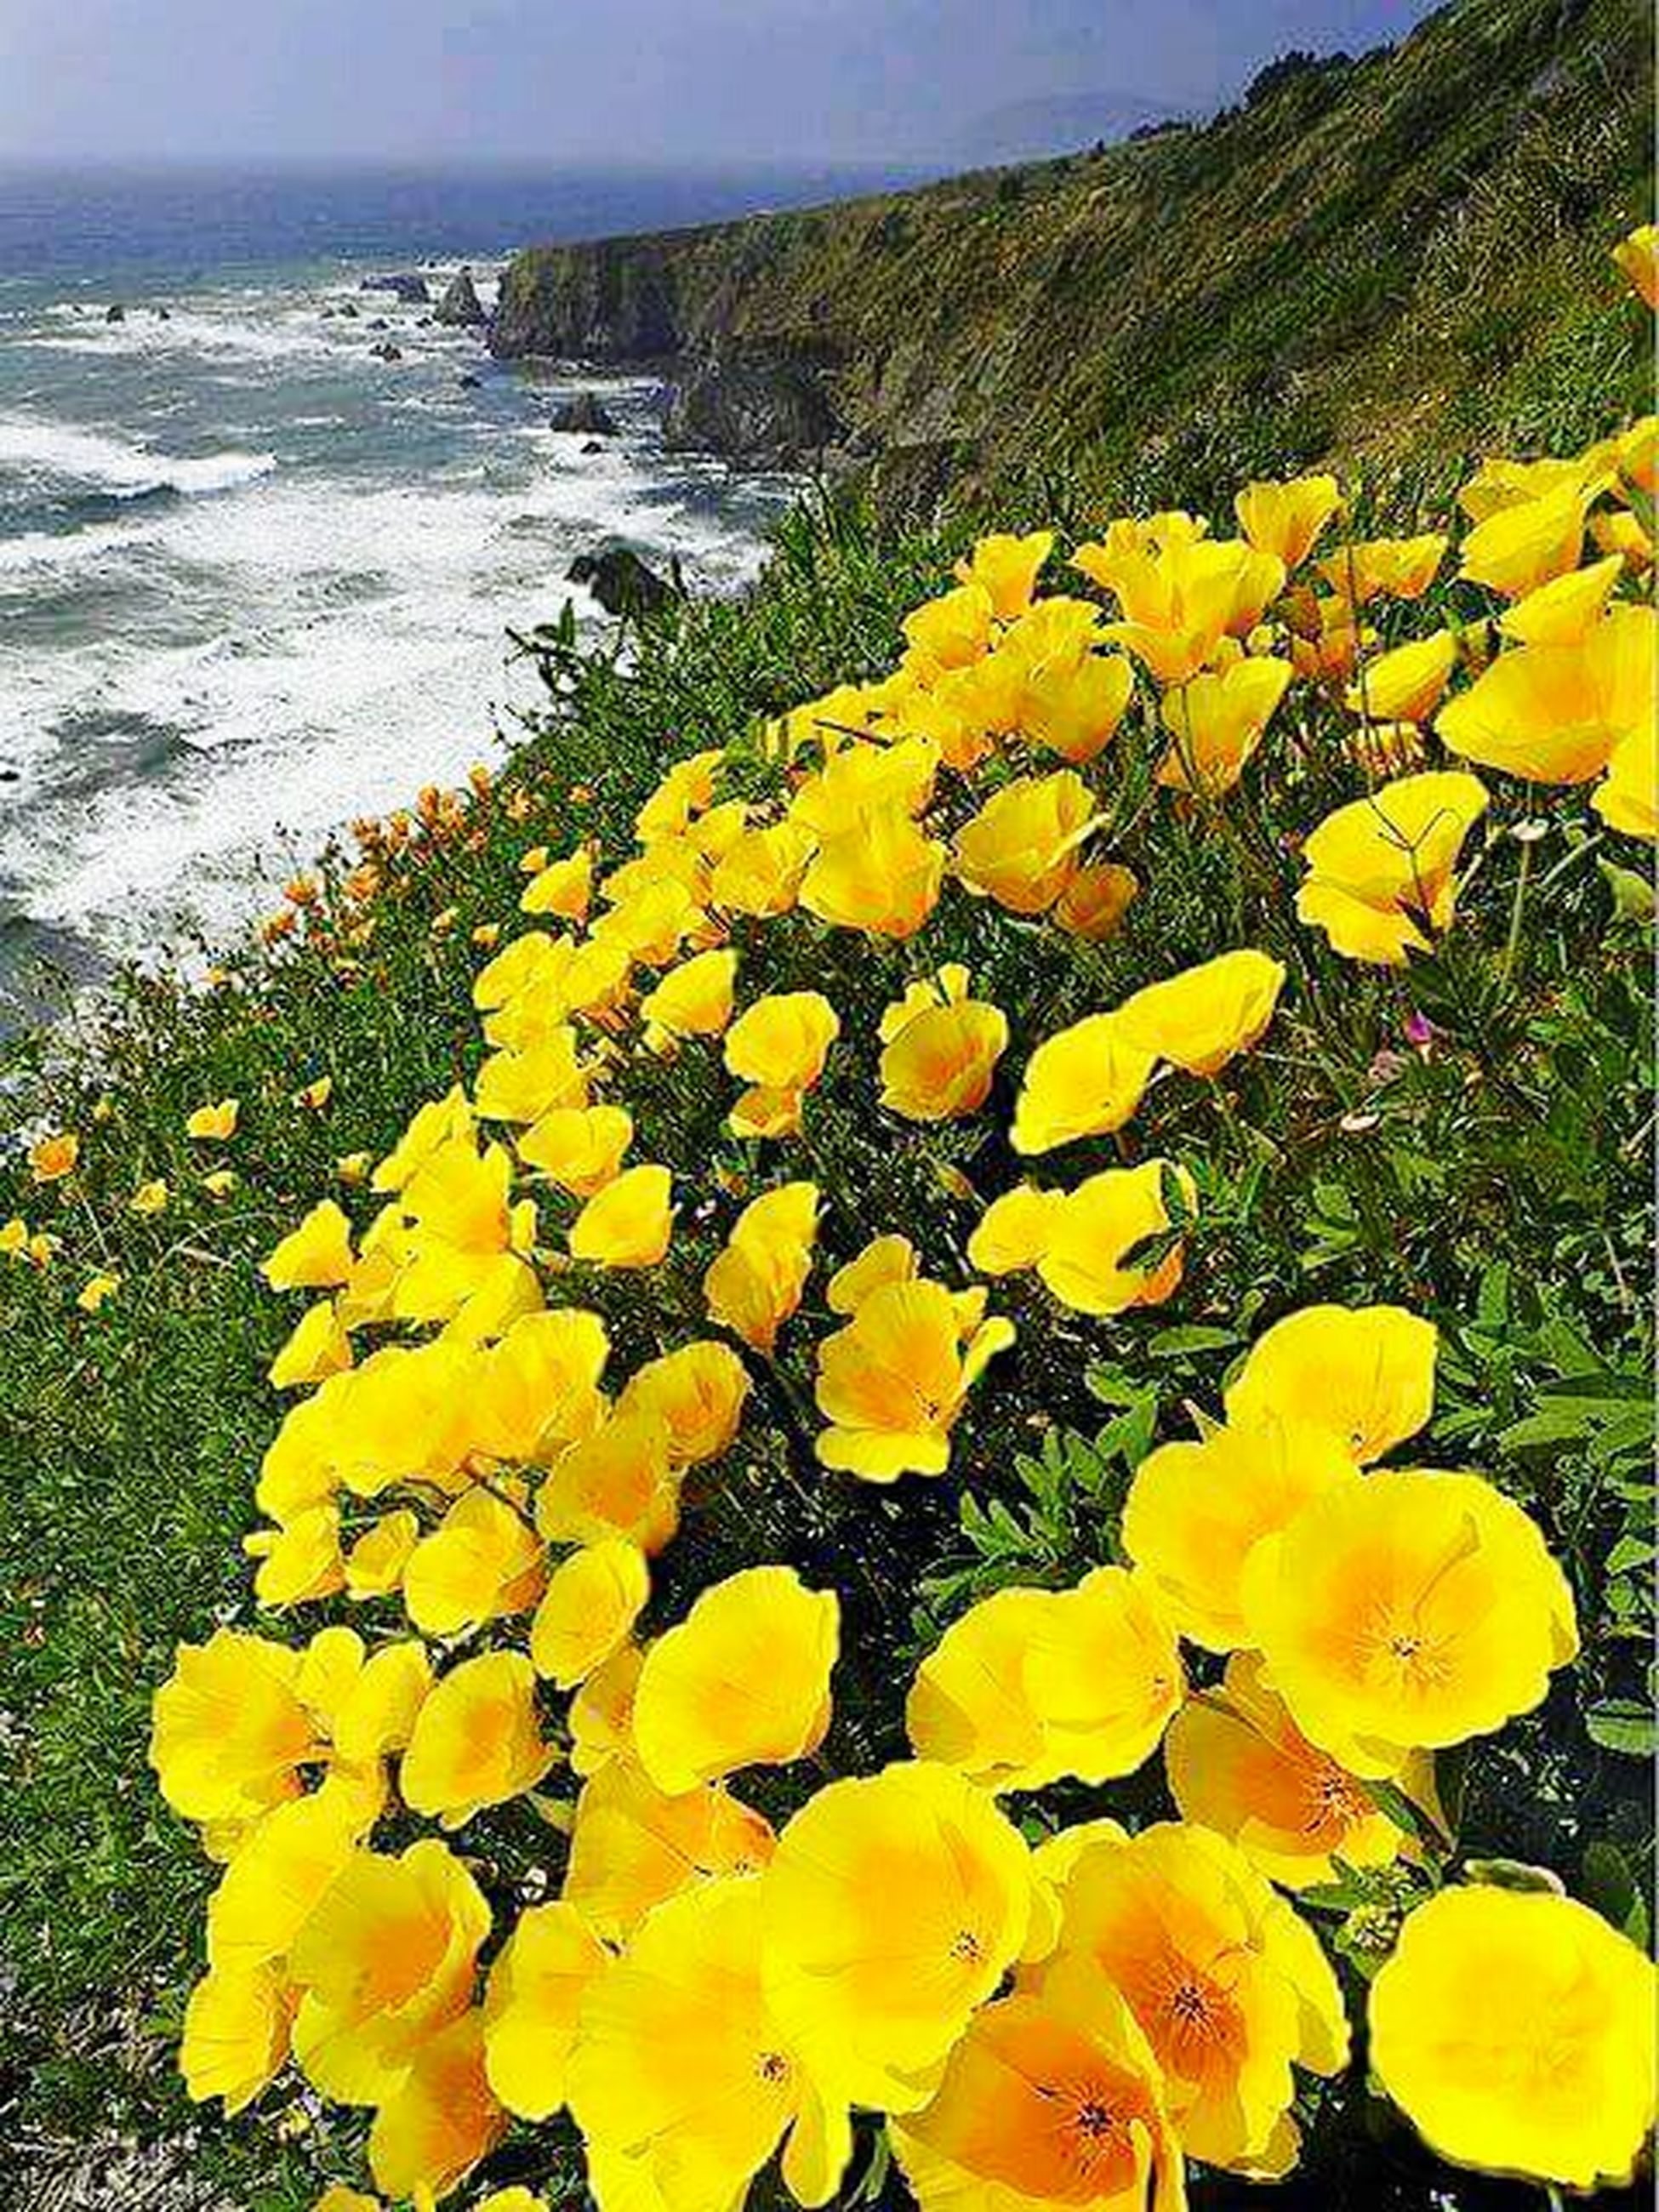 flower, yellow, beauty in nature, water, nature, growth, freshness, plant, scenics, tranquil scene, tranquility, sea, fragility, high angle view, petal, blooming, day, idyllic, outdoors, no people